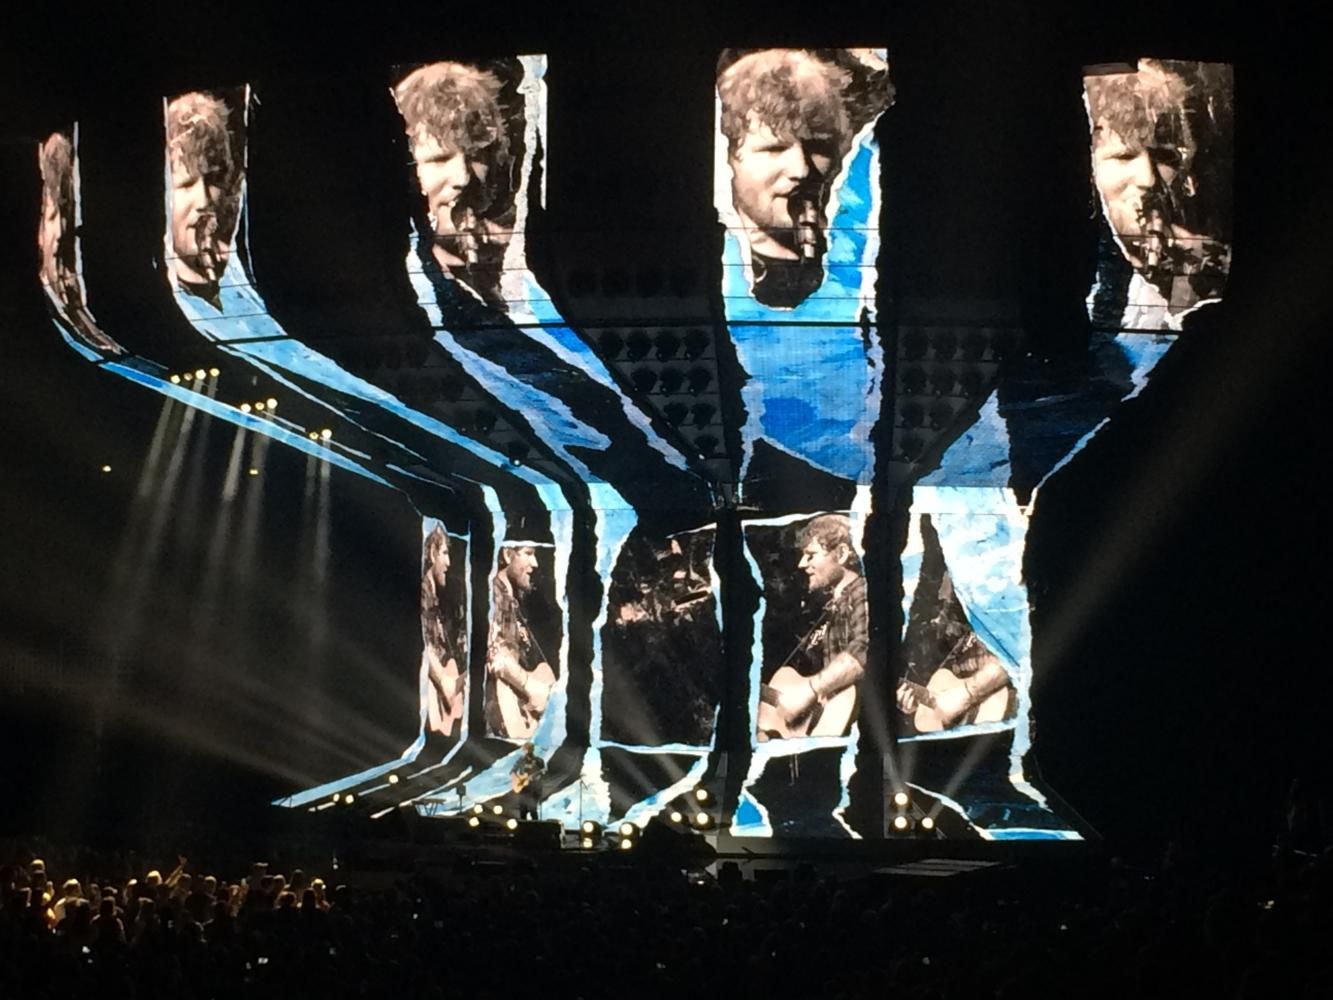 Ed Sheeran's Concert Draws Fans from PLD